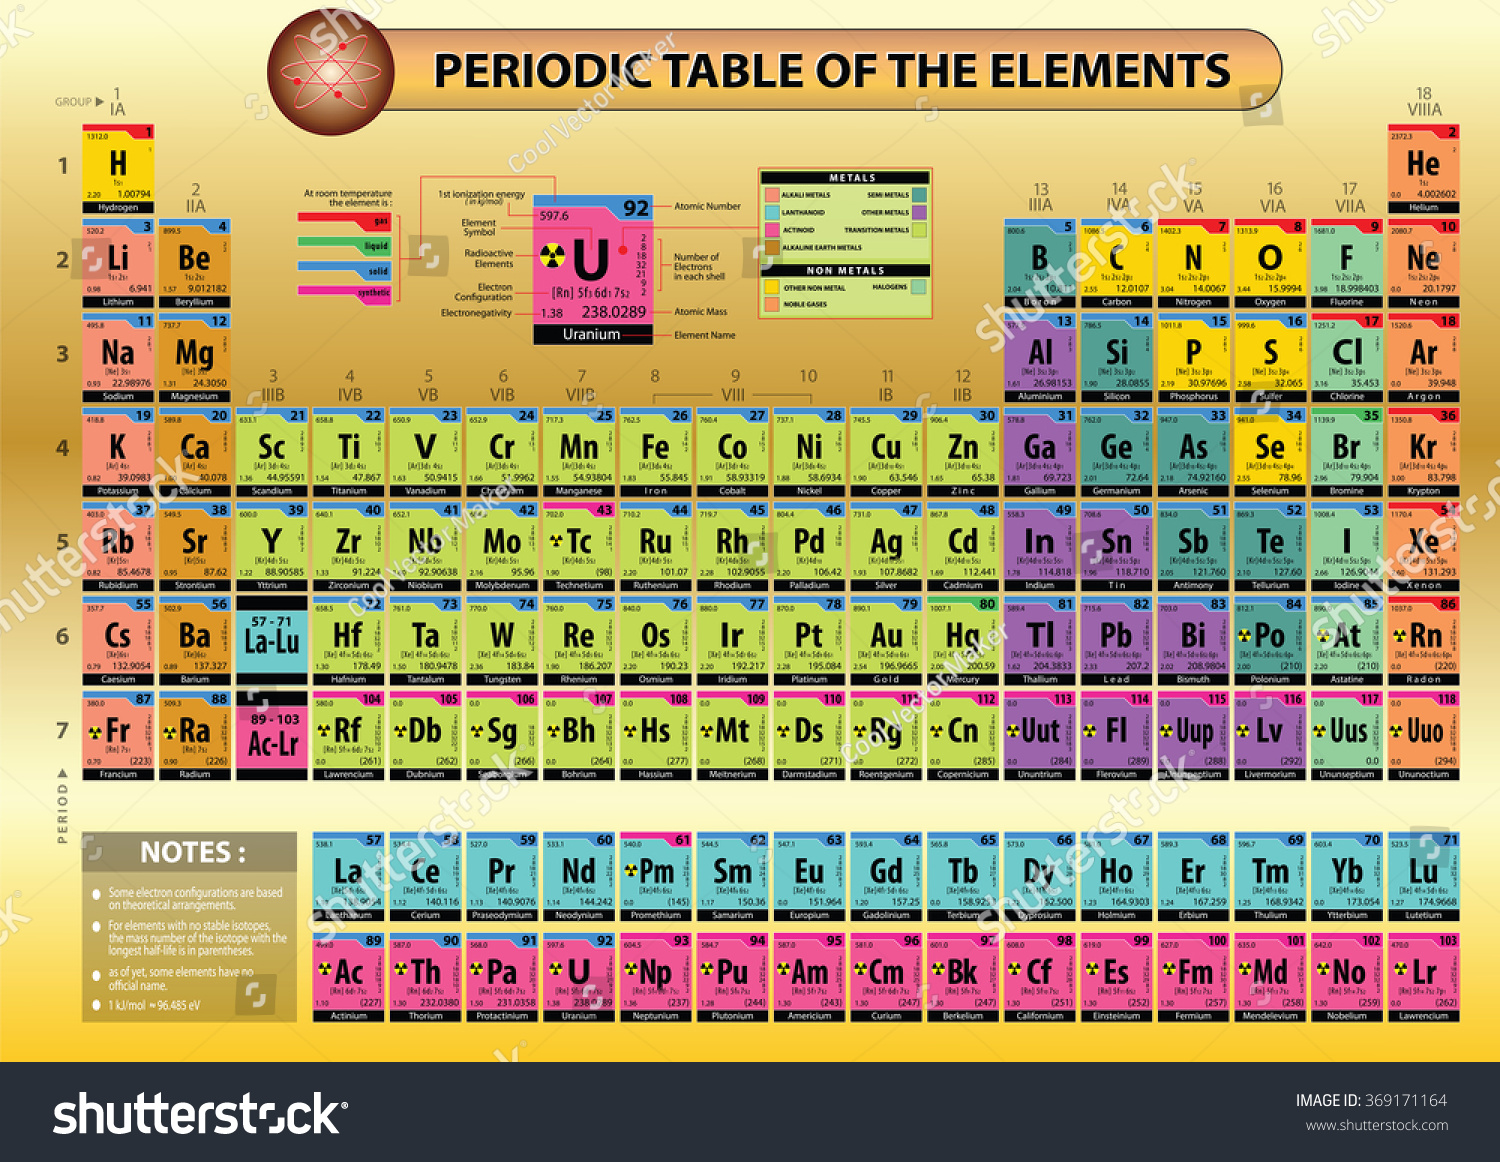 Periodic table elements element name element stock vector periodic table of elements with element name element symbols atomic number atomic gamestrikefo Images